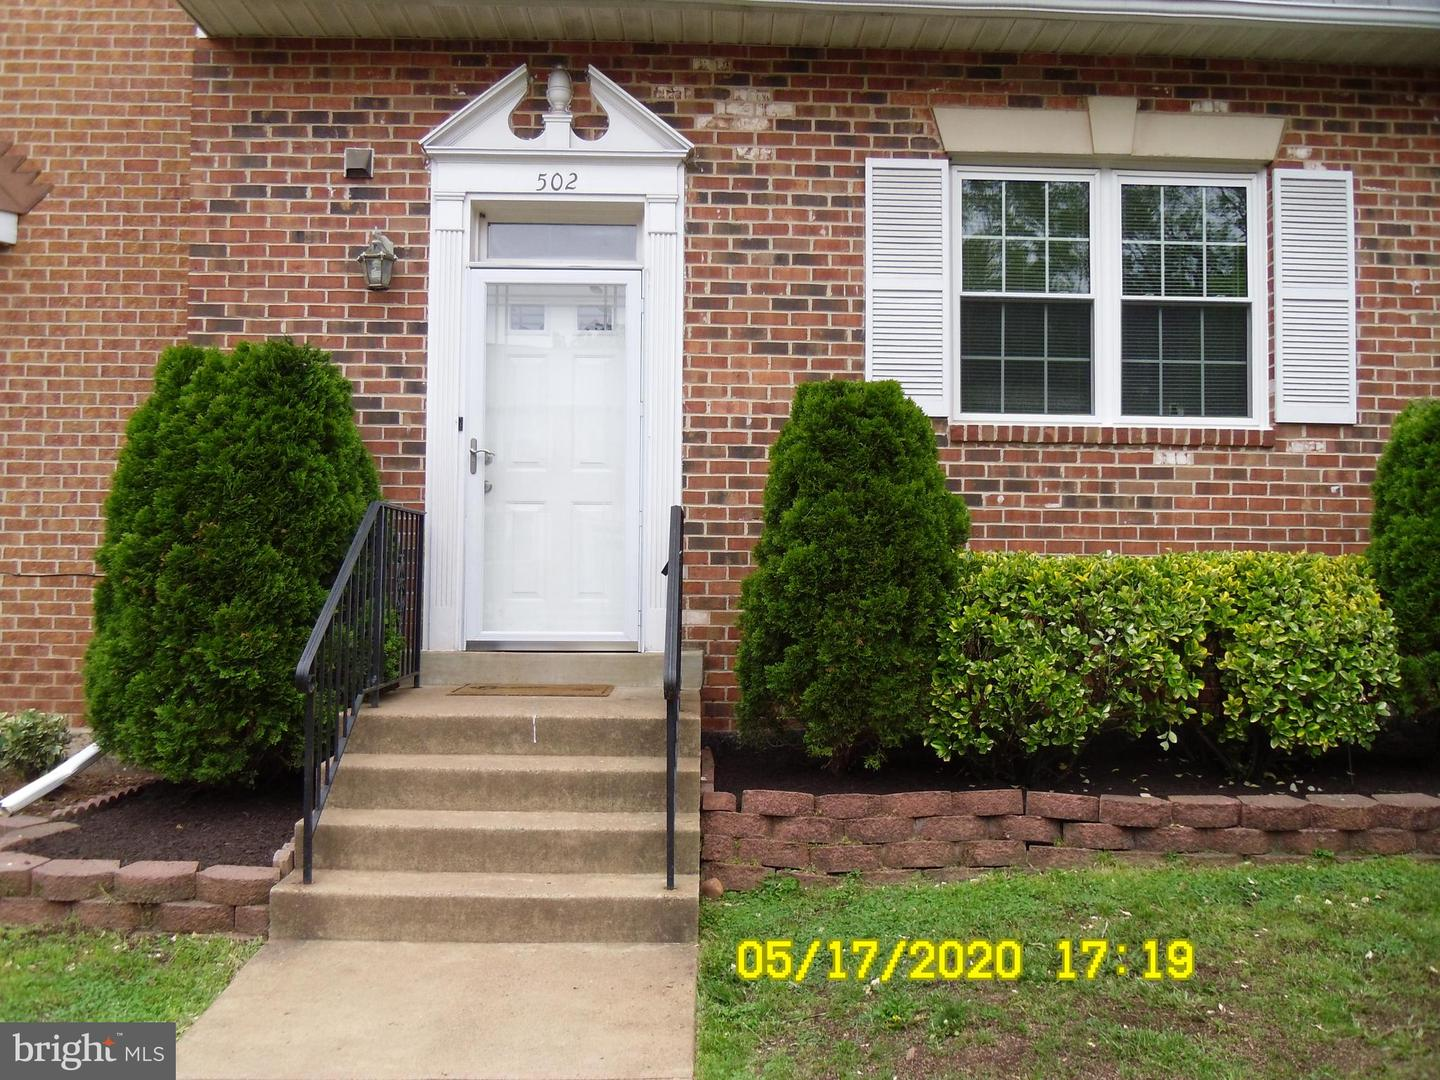 Photo of 502 BEACON DR, STERLING, VA 20164